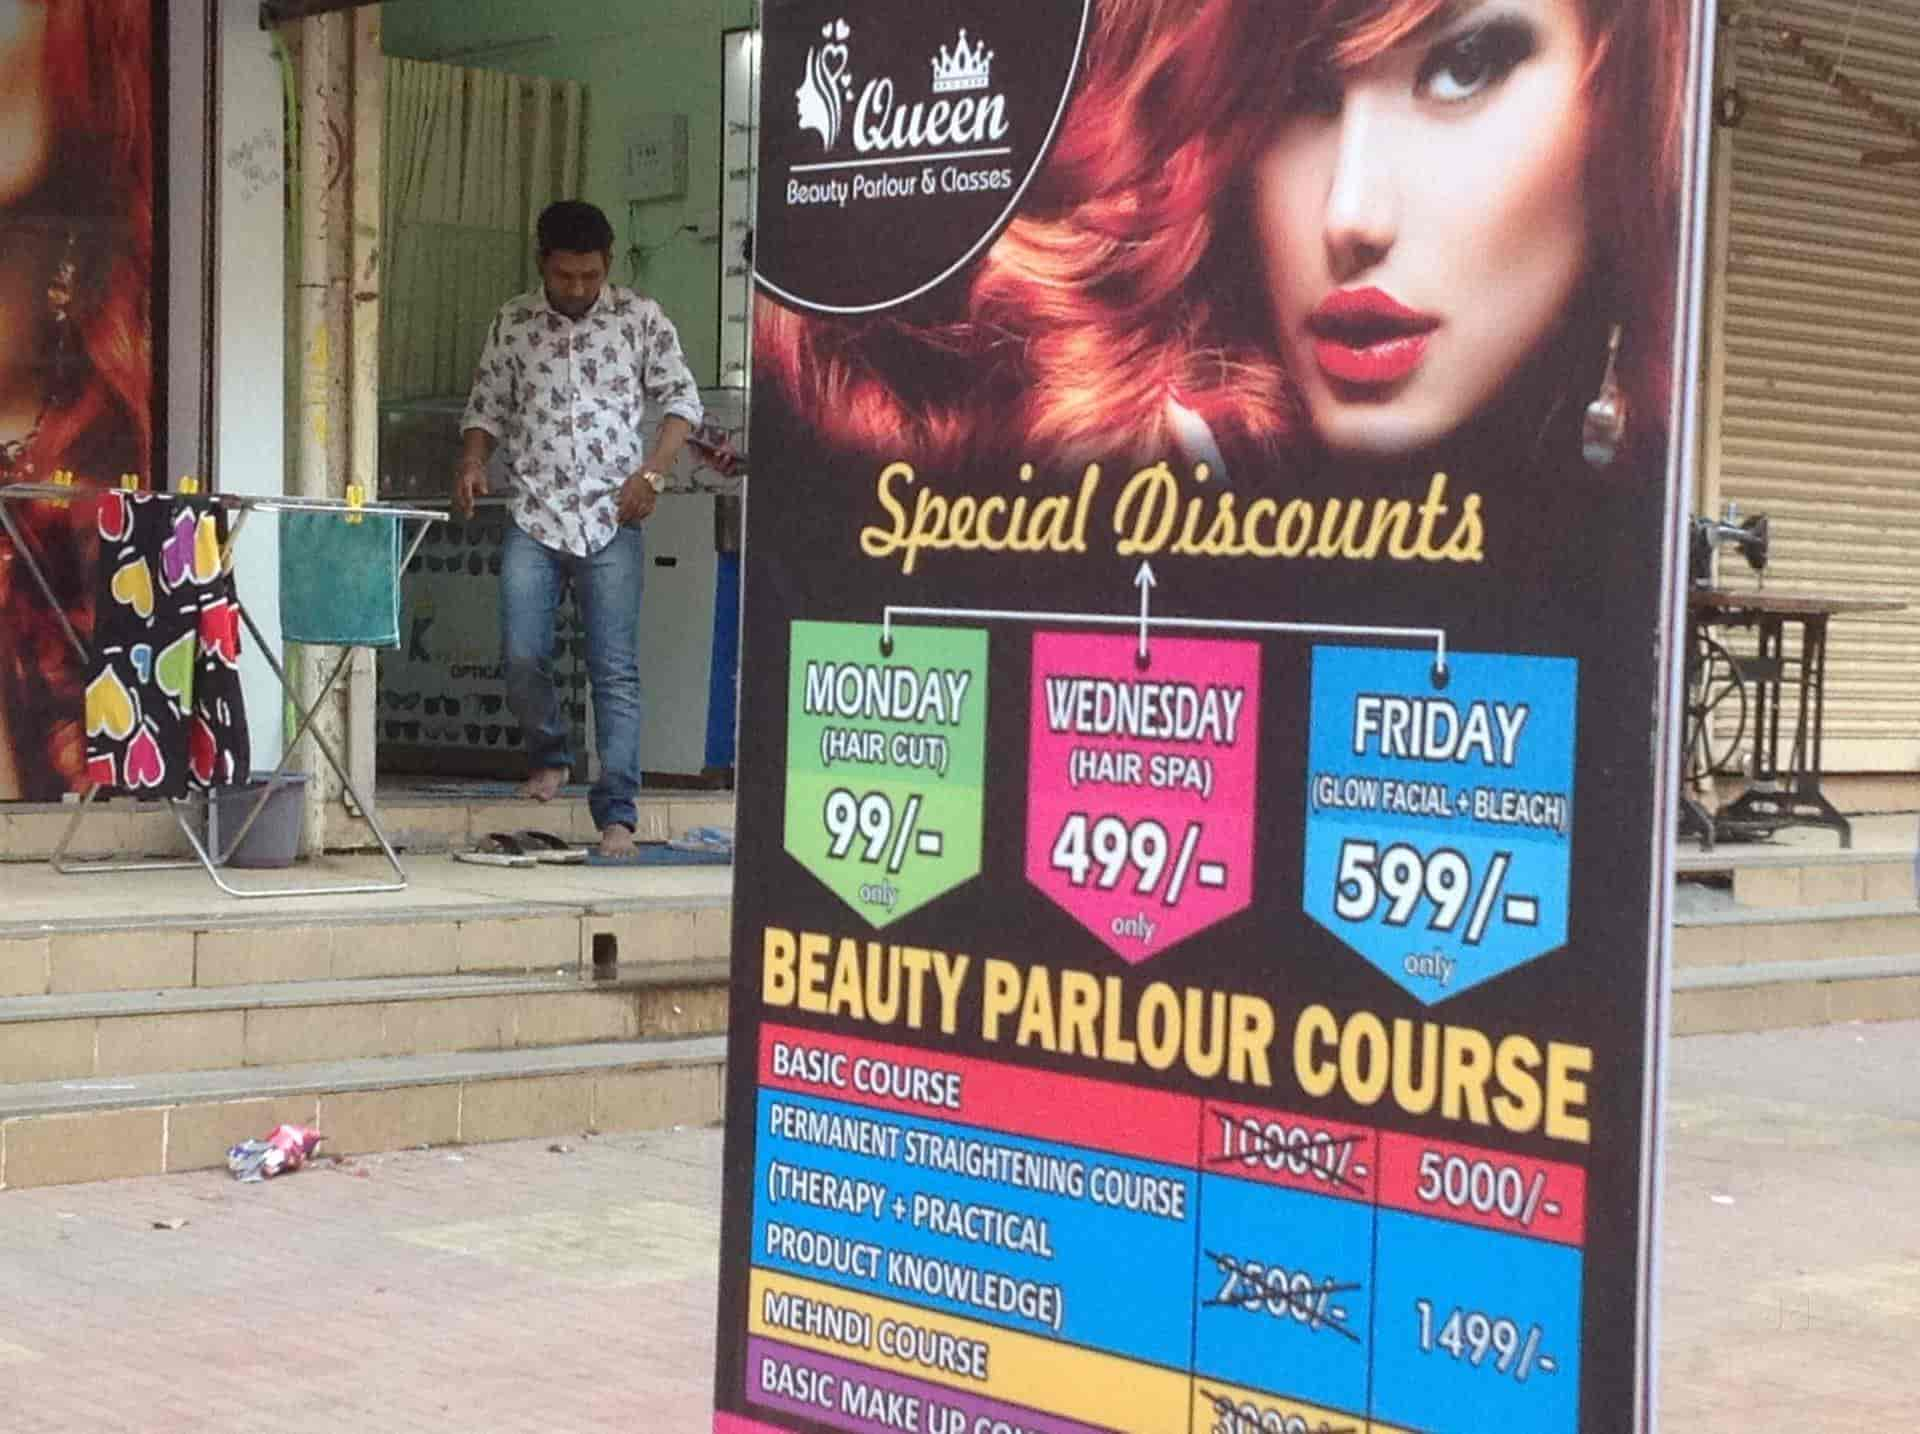 Queen Ladies Beauty Parlour Photos Vasai East Mumbai Pictures Images Gallery Justdial